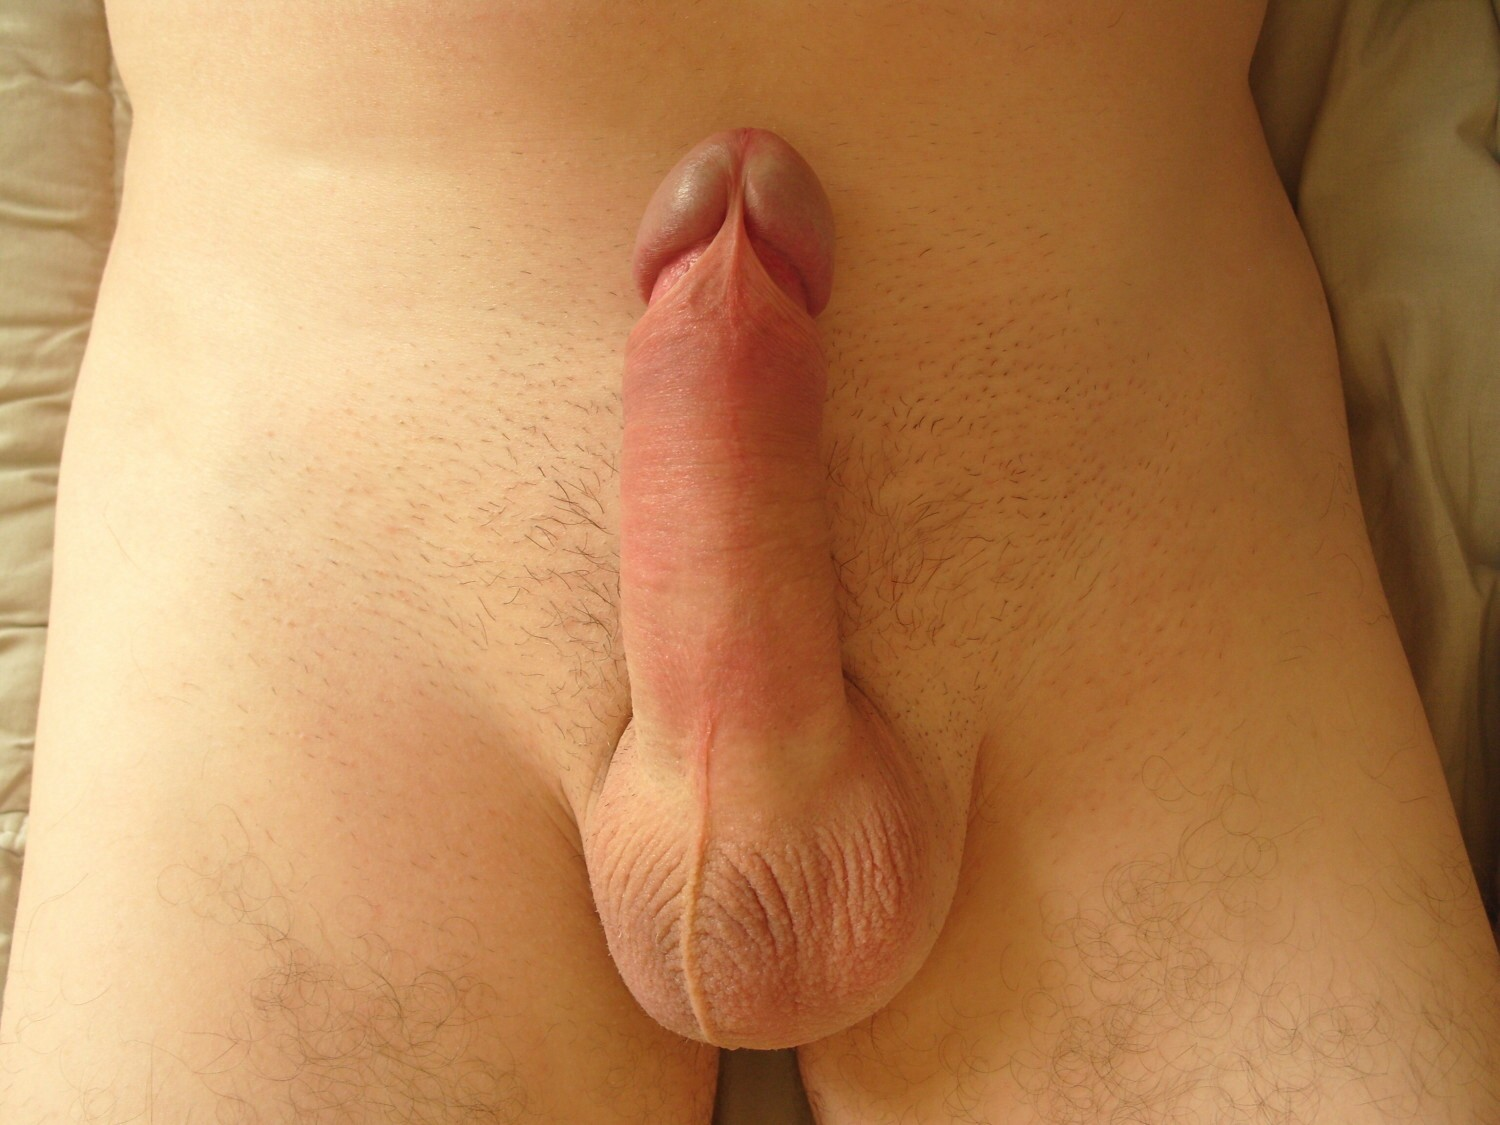 Erect penis during sex